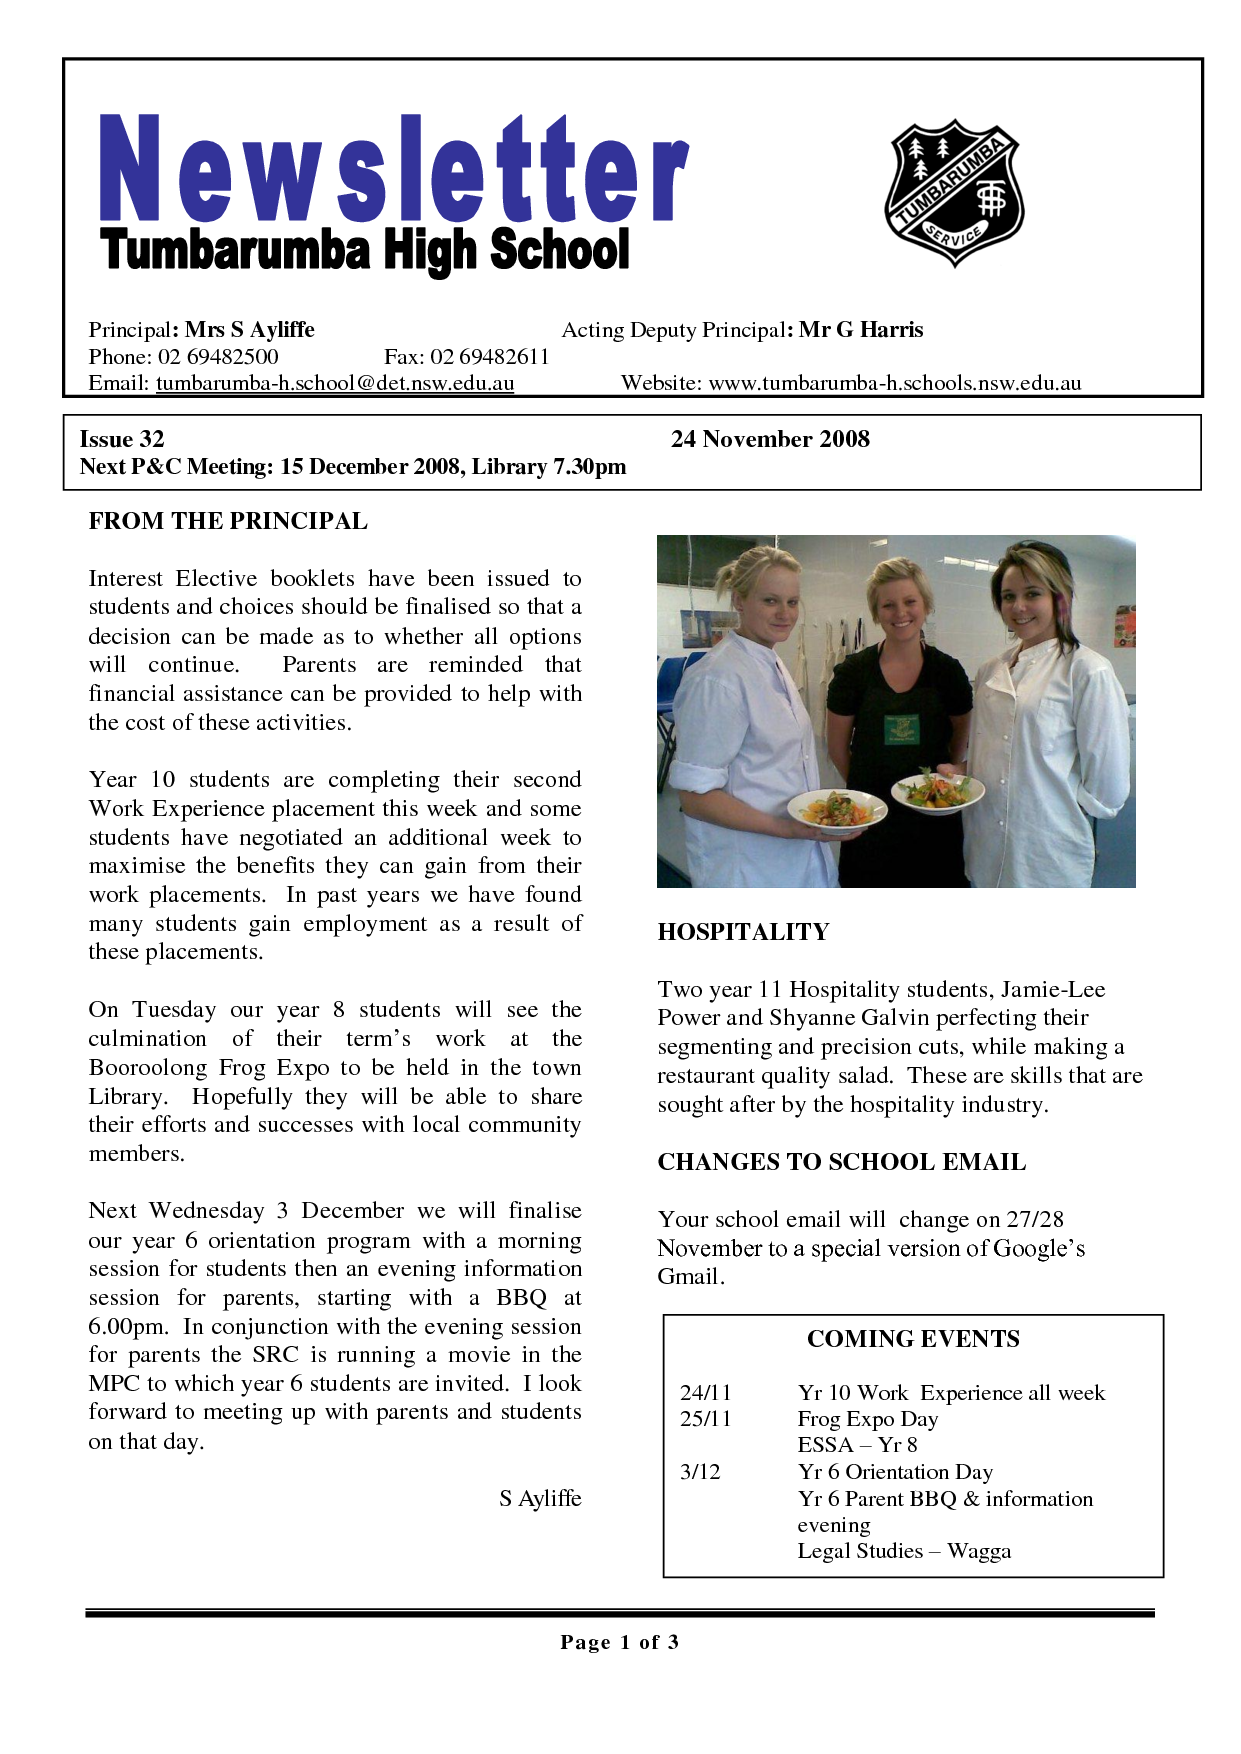 Awesome High School Newsletter Templates Images Newslett - Newsletter format template